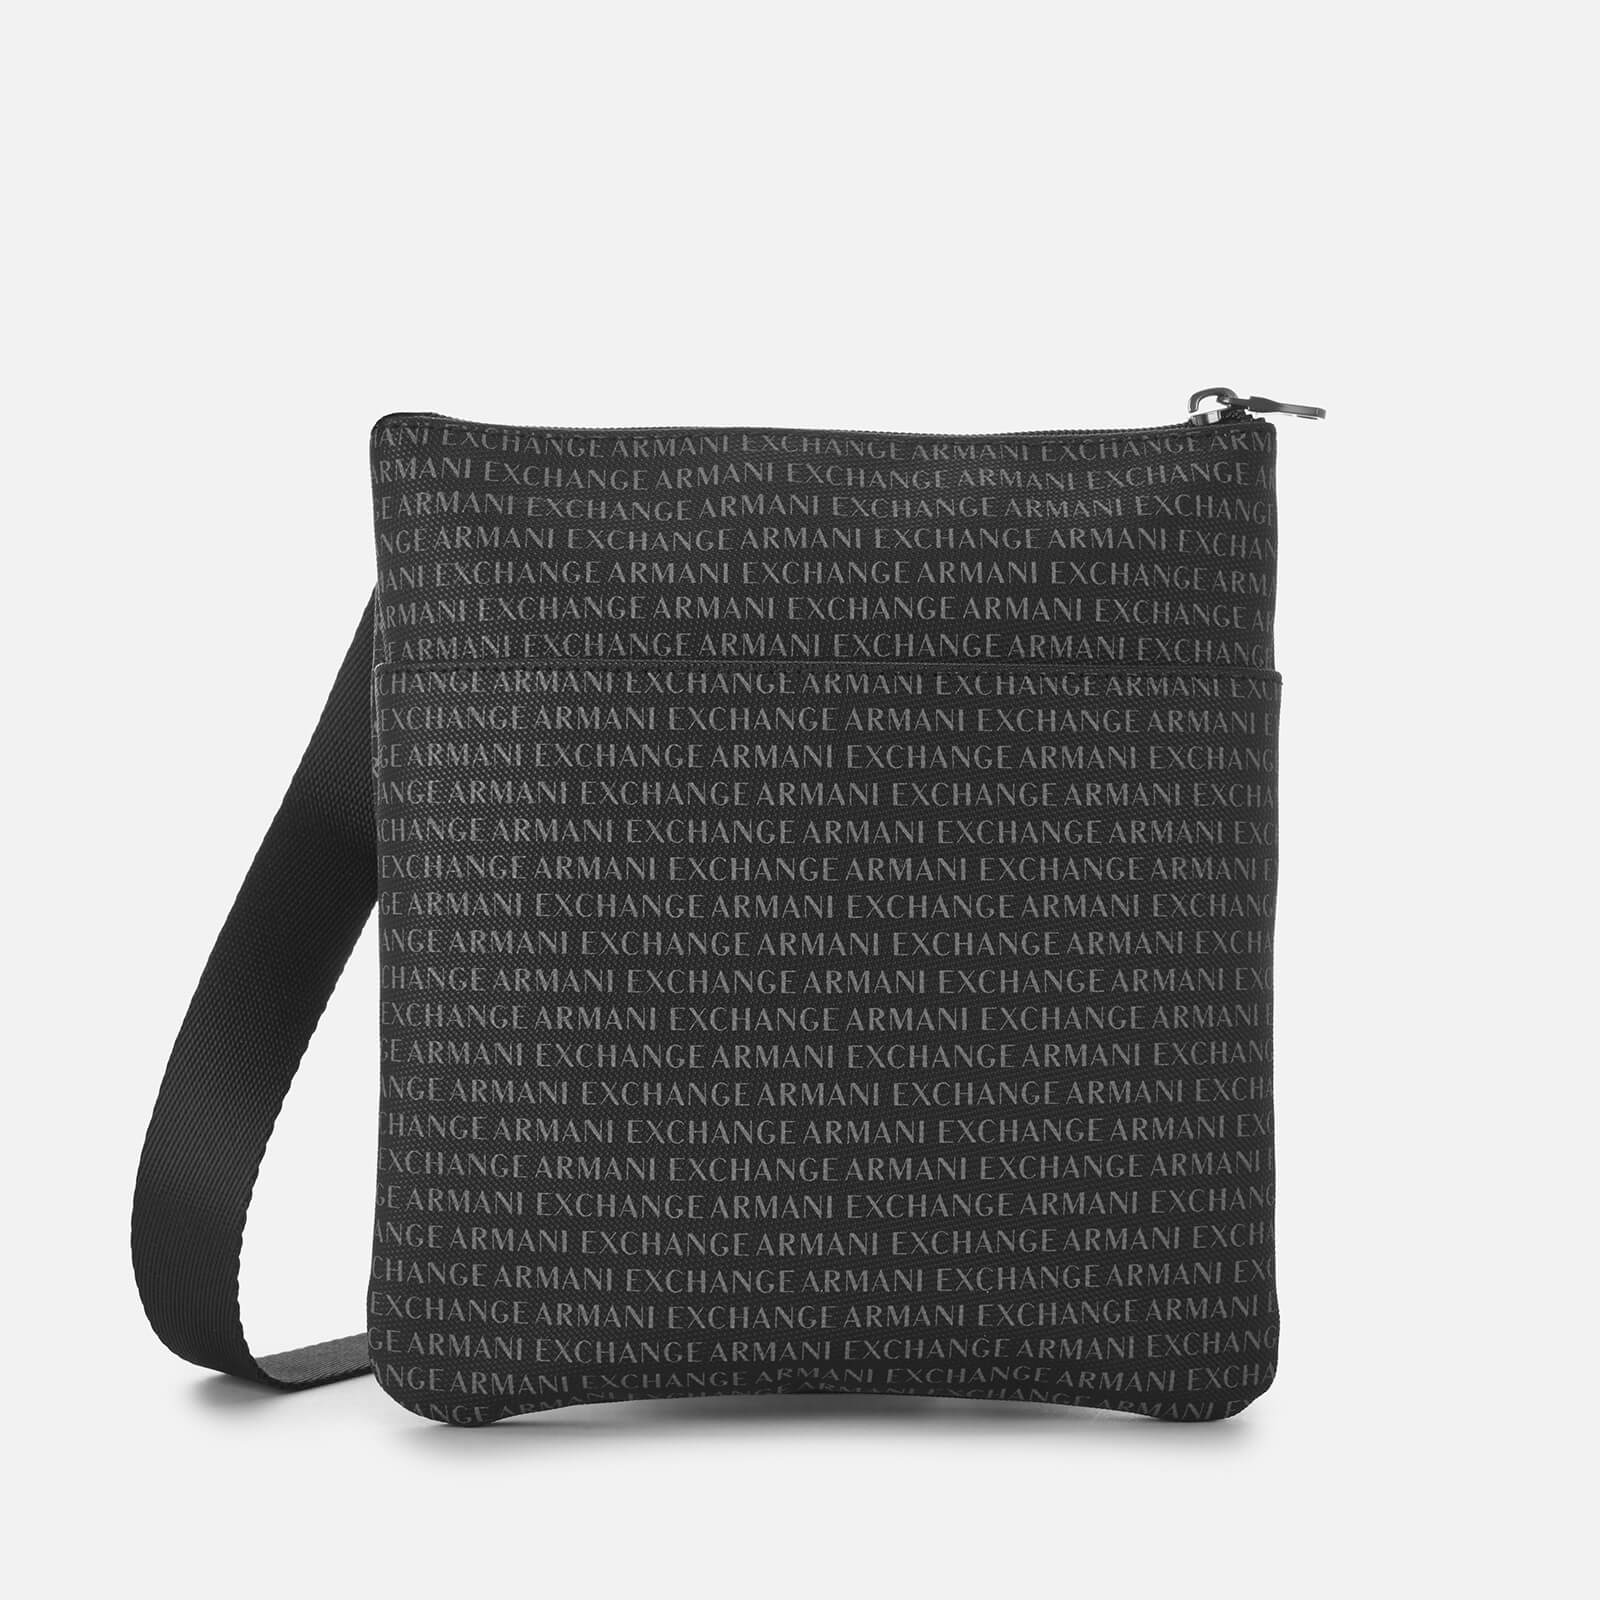 0d36512a46 Armani Exchange Men's All Over Print Cross Body Bag - Black